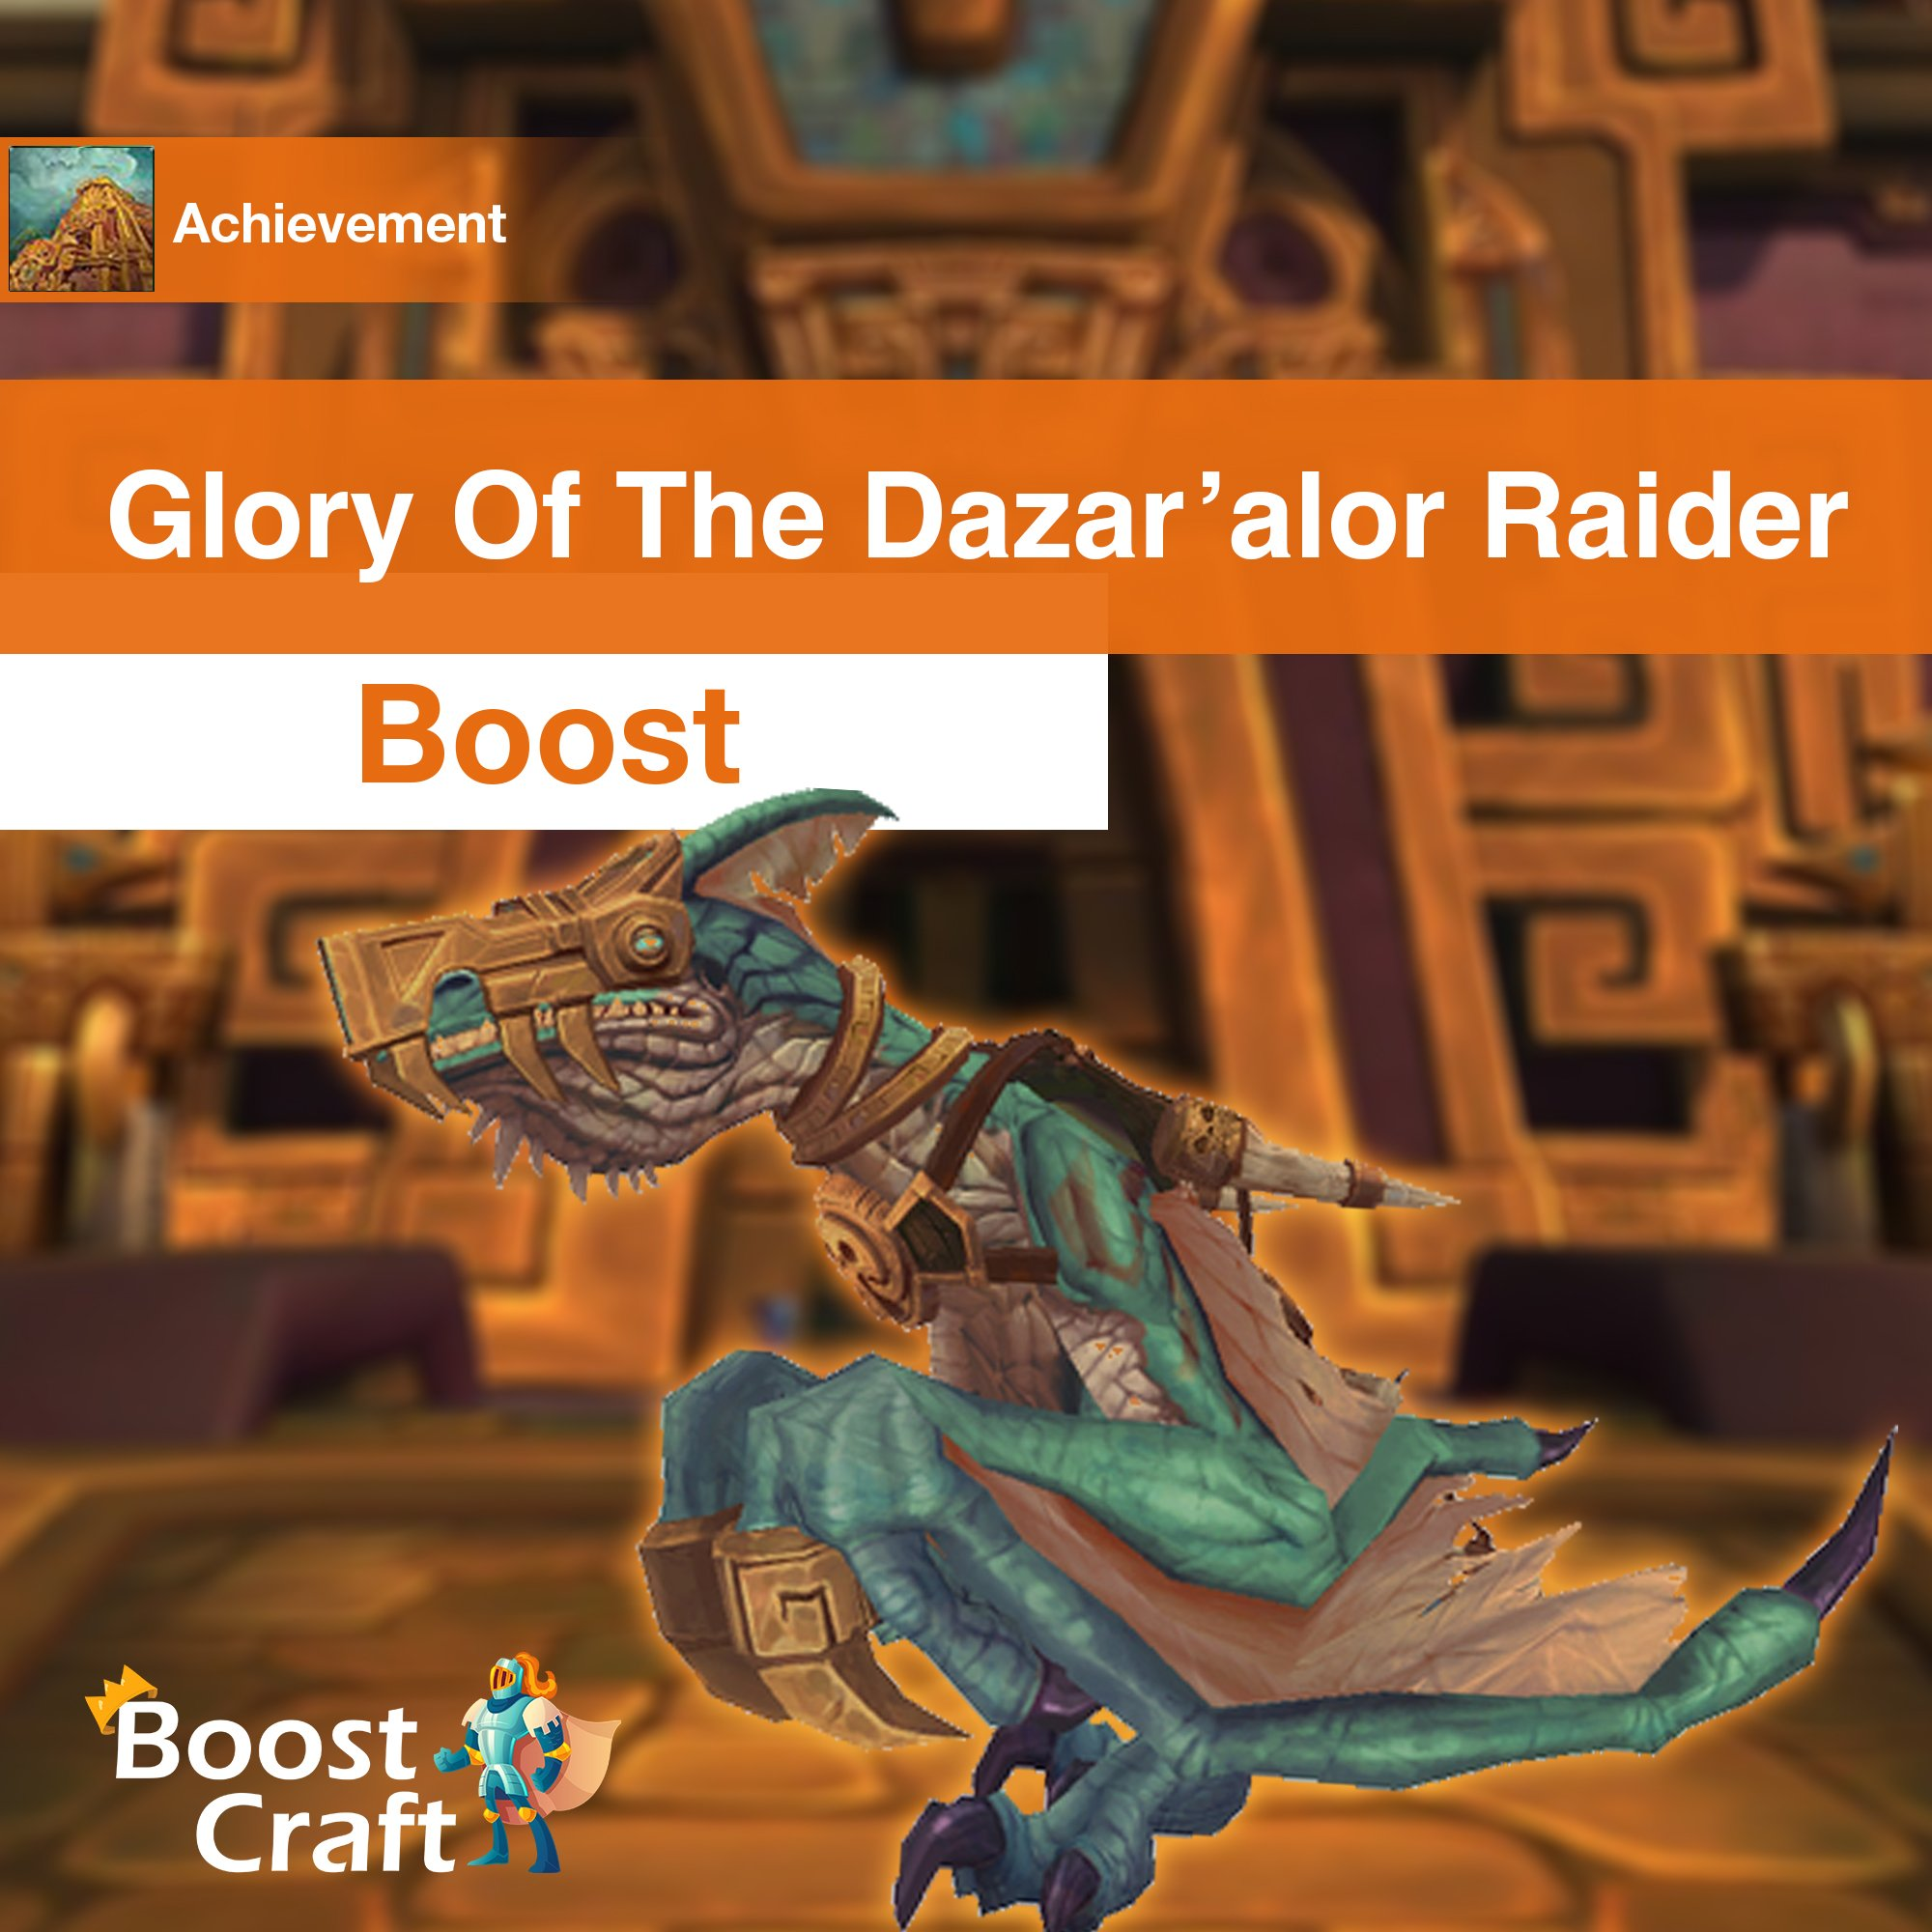 Glory of The Dazar'alor Raider – Boost